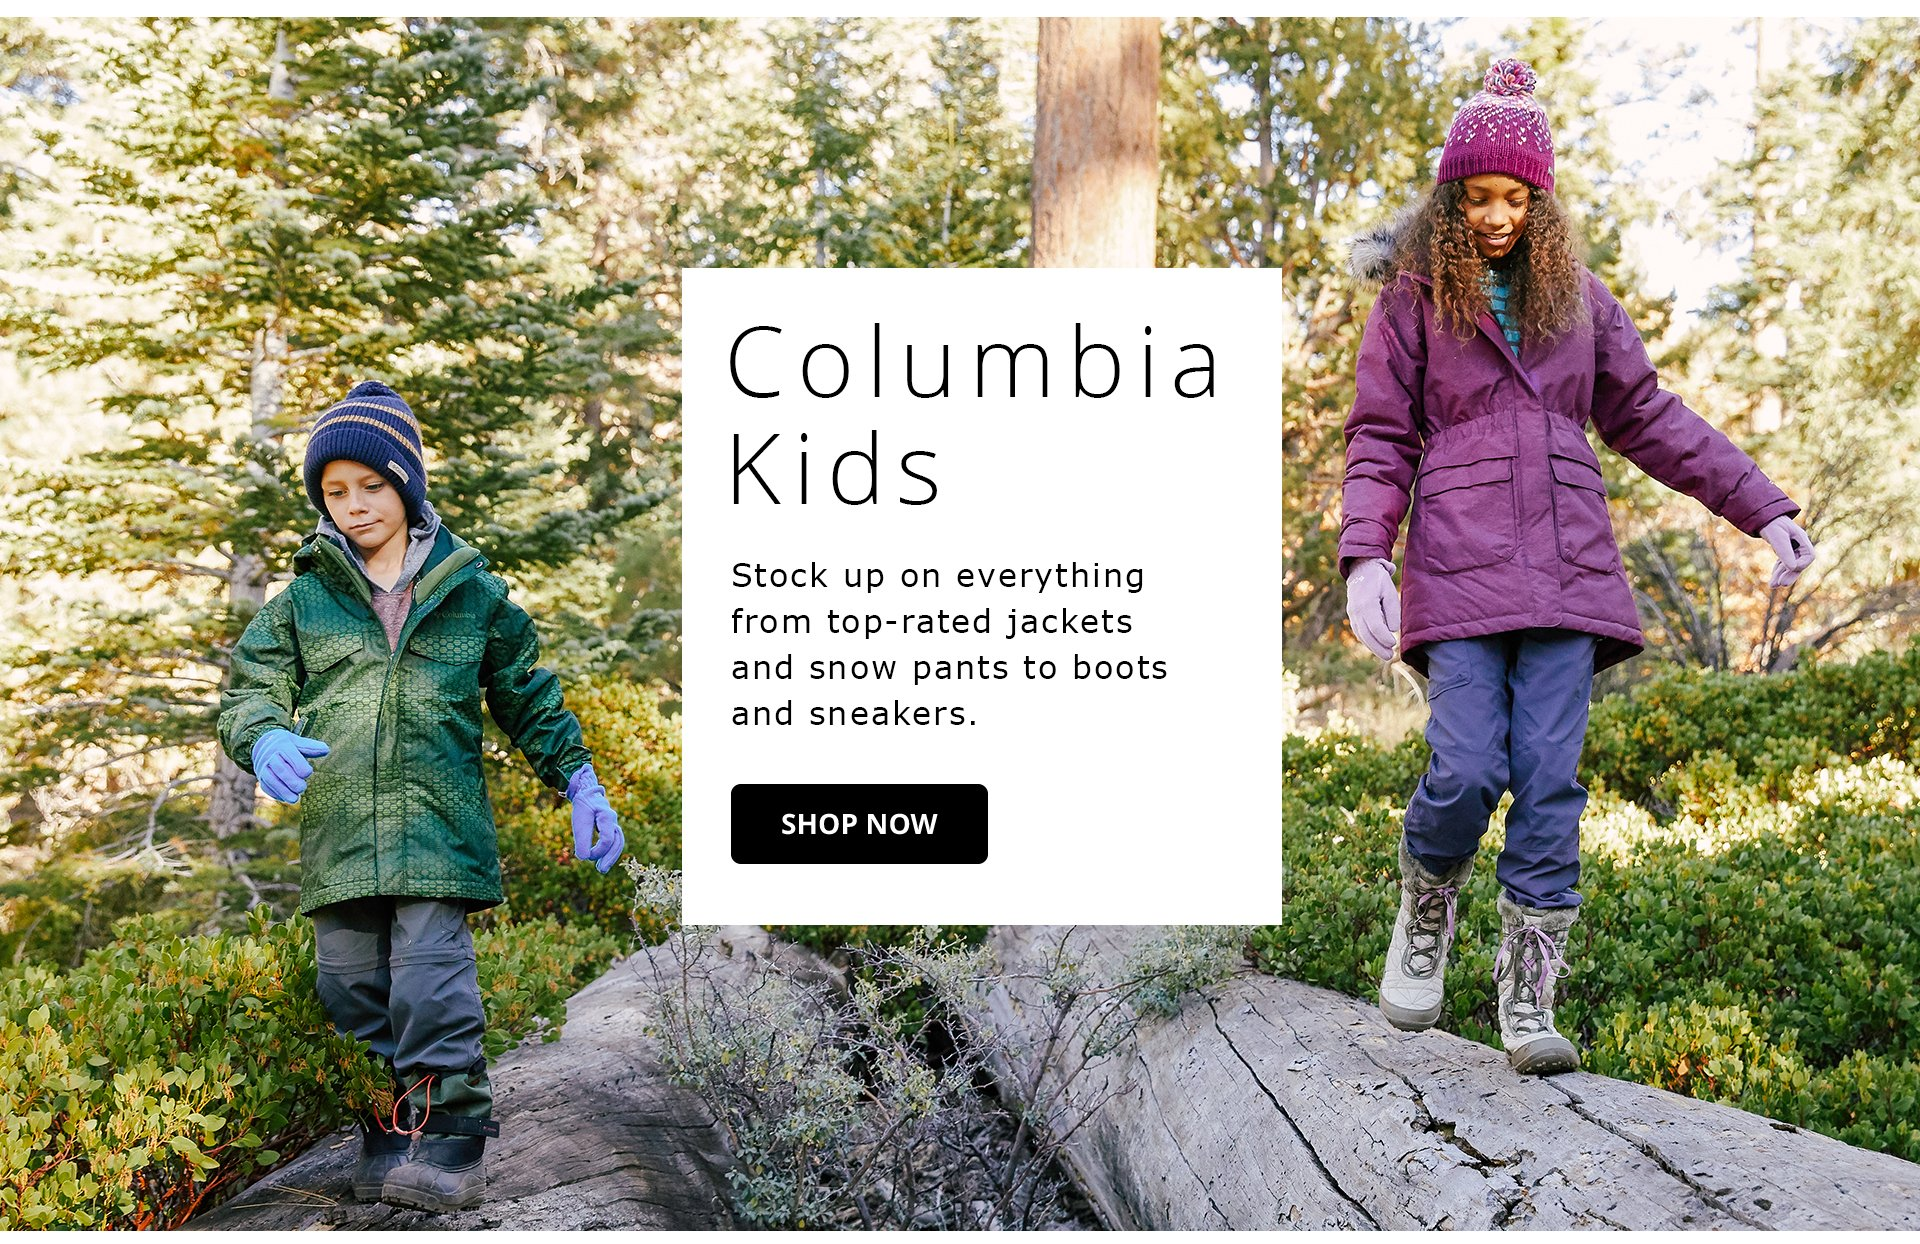 Columbia Kids. Stock up on everything from top rated jackets and snow pants to boots and sneakers. Shop Now.